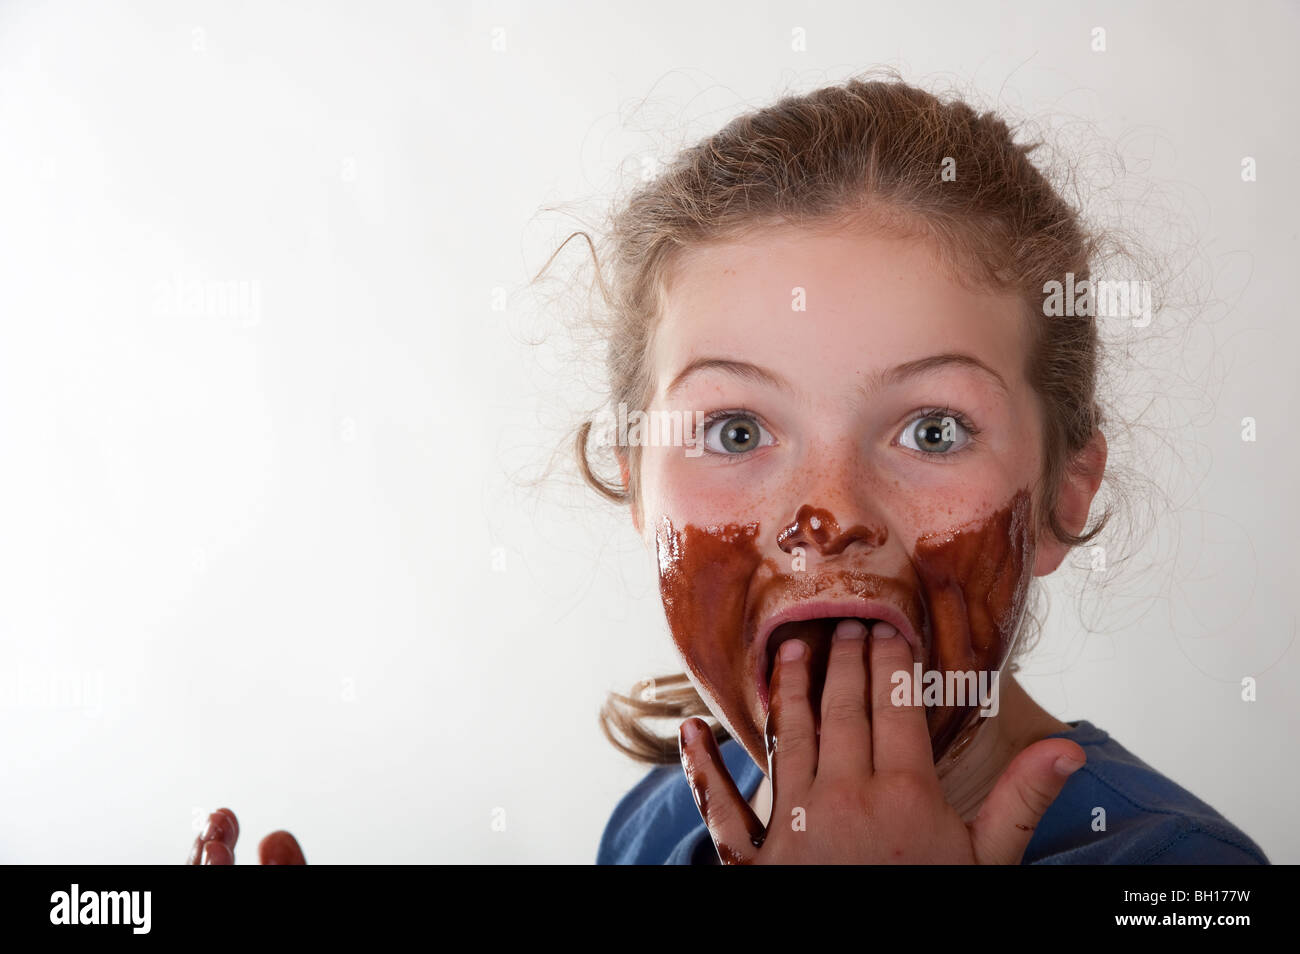 little girl smiling through chocolate covered face - Stock Image